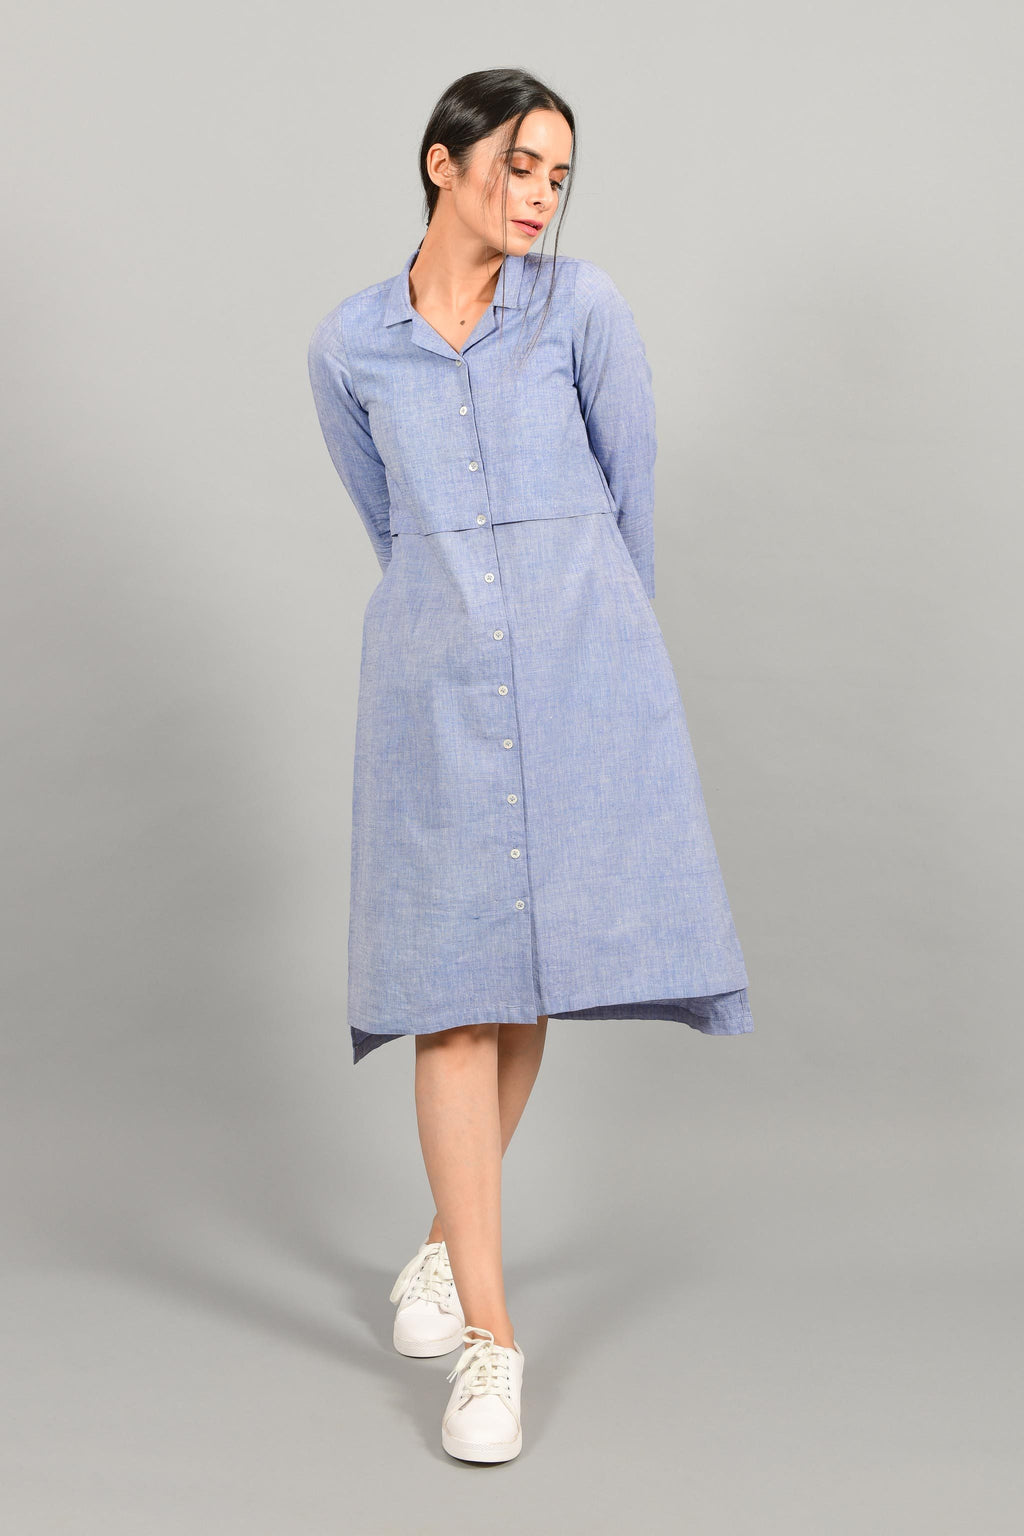 Front stylised pose of an Indian female womenswear fashion model in a blue chambray handspun and handwoven khadi cotton shirt dress by Cotton Rack.